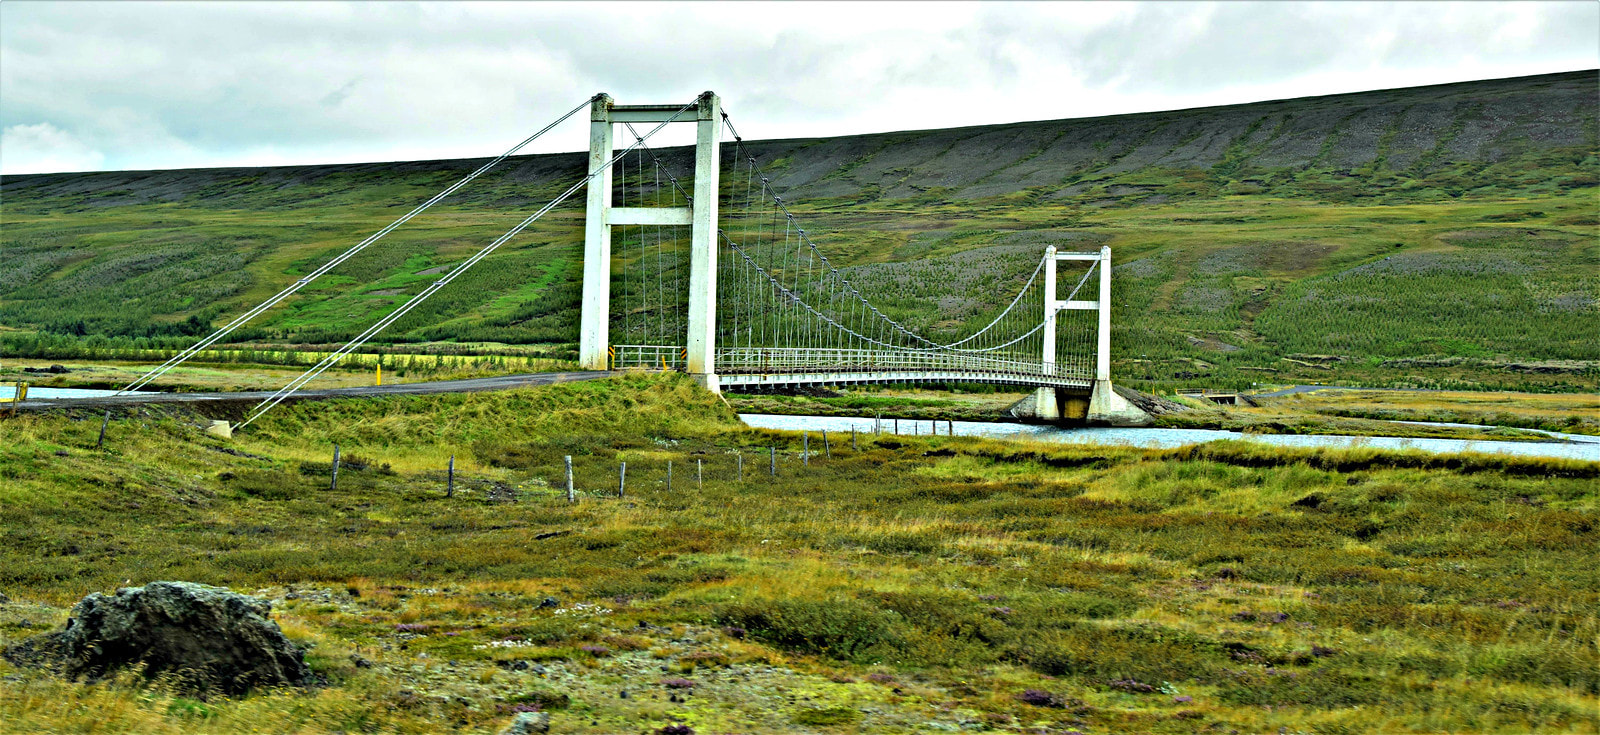 Bridge Connecting Road 844 to Road 842 - North Iceland